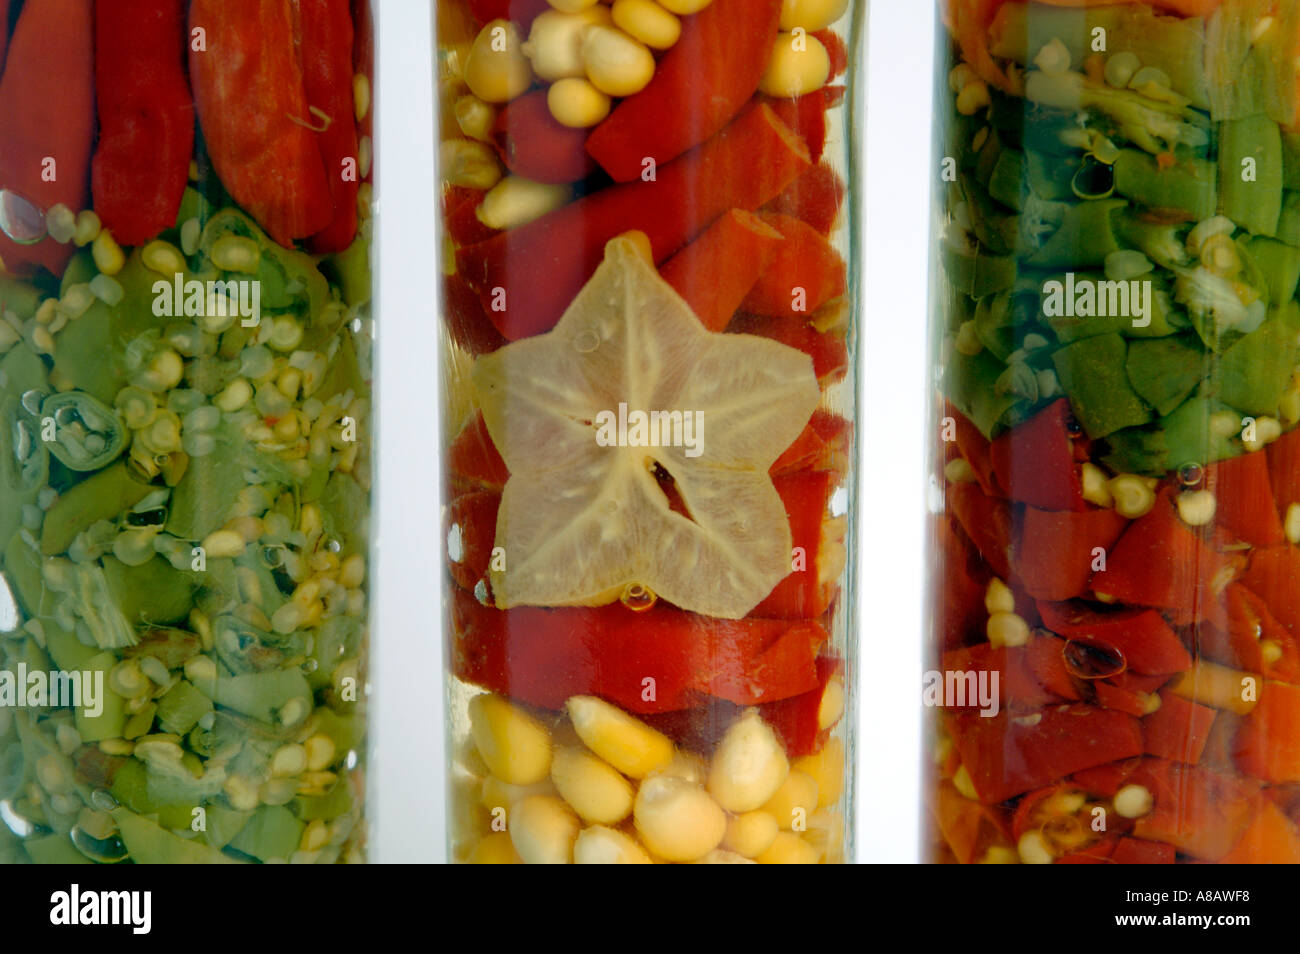 Mixed pickled vegetables preserved in glass jars - Stock Image